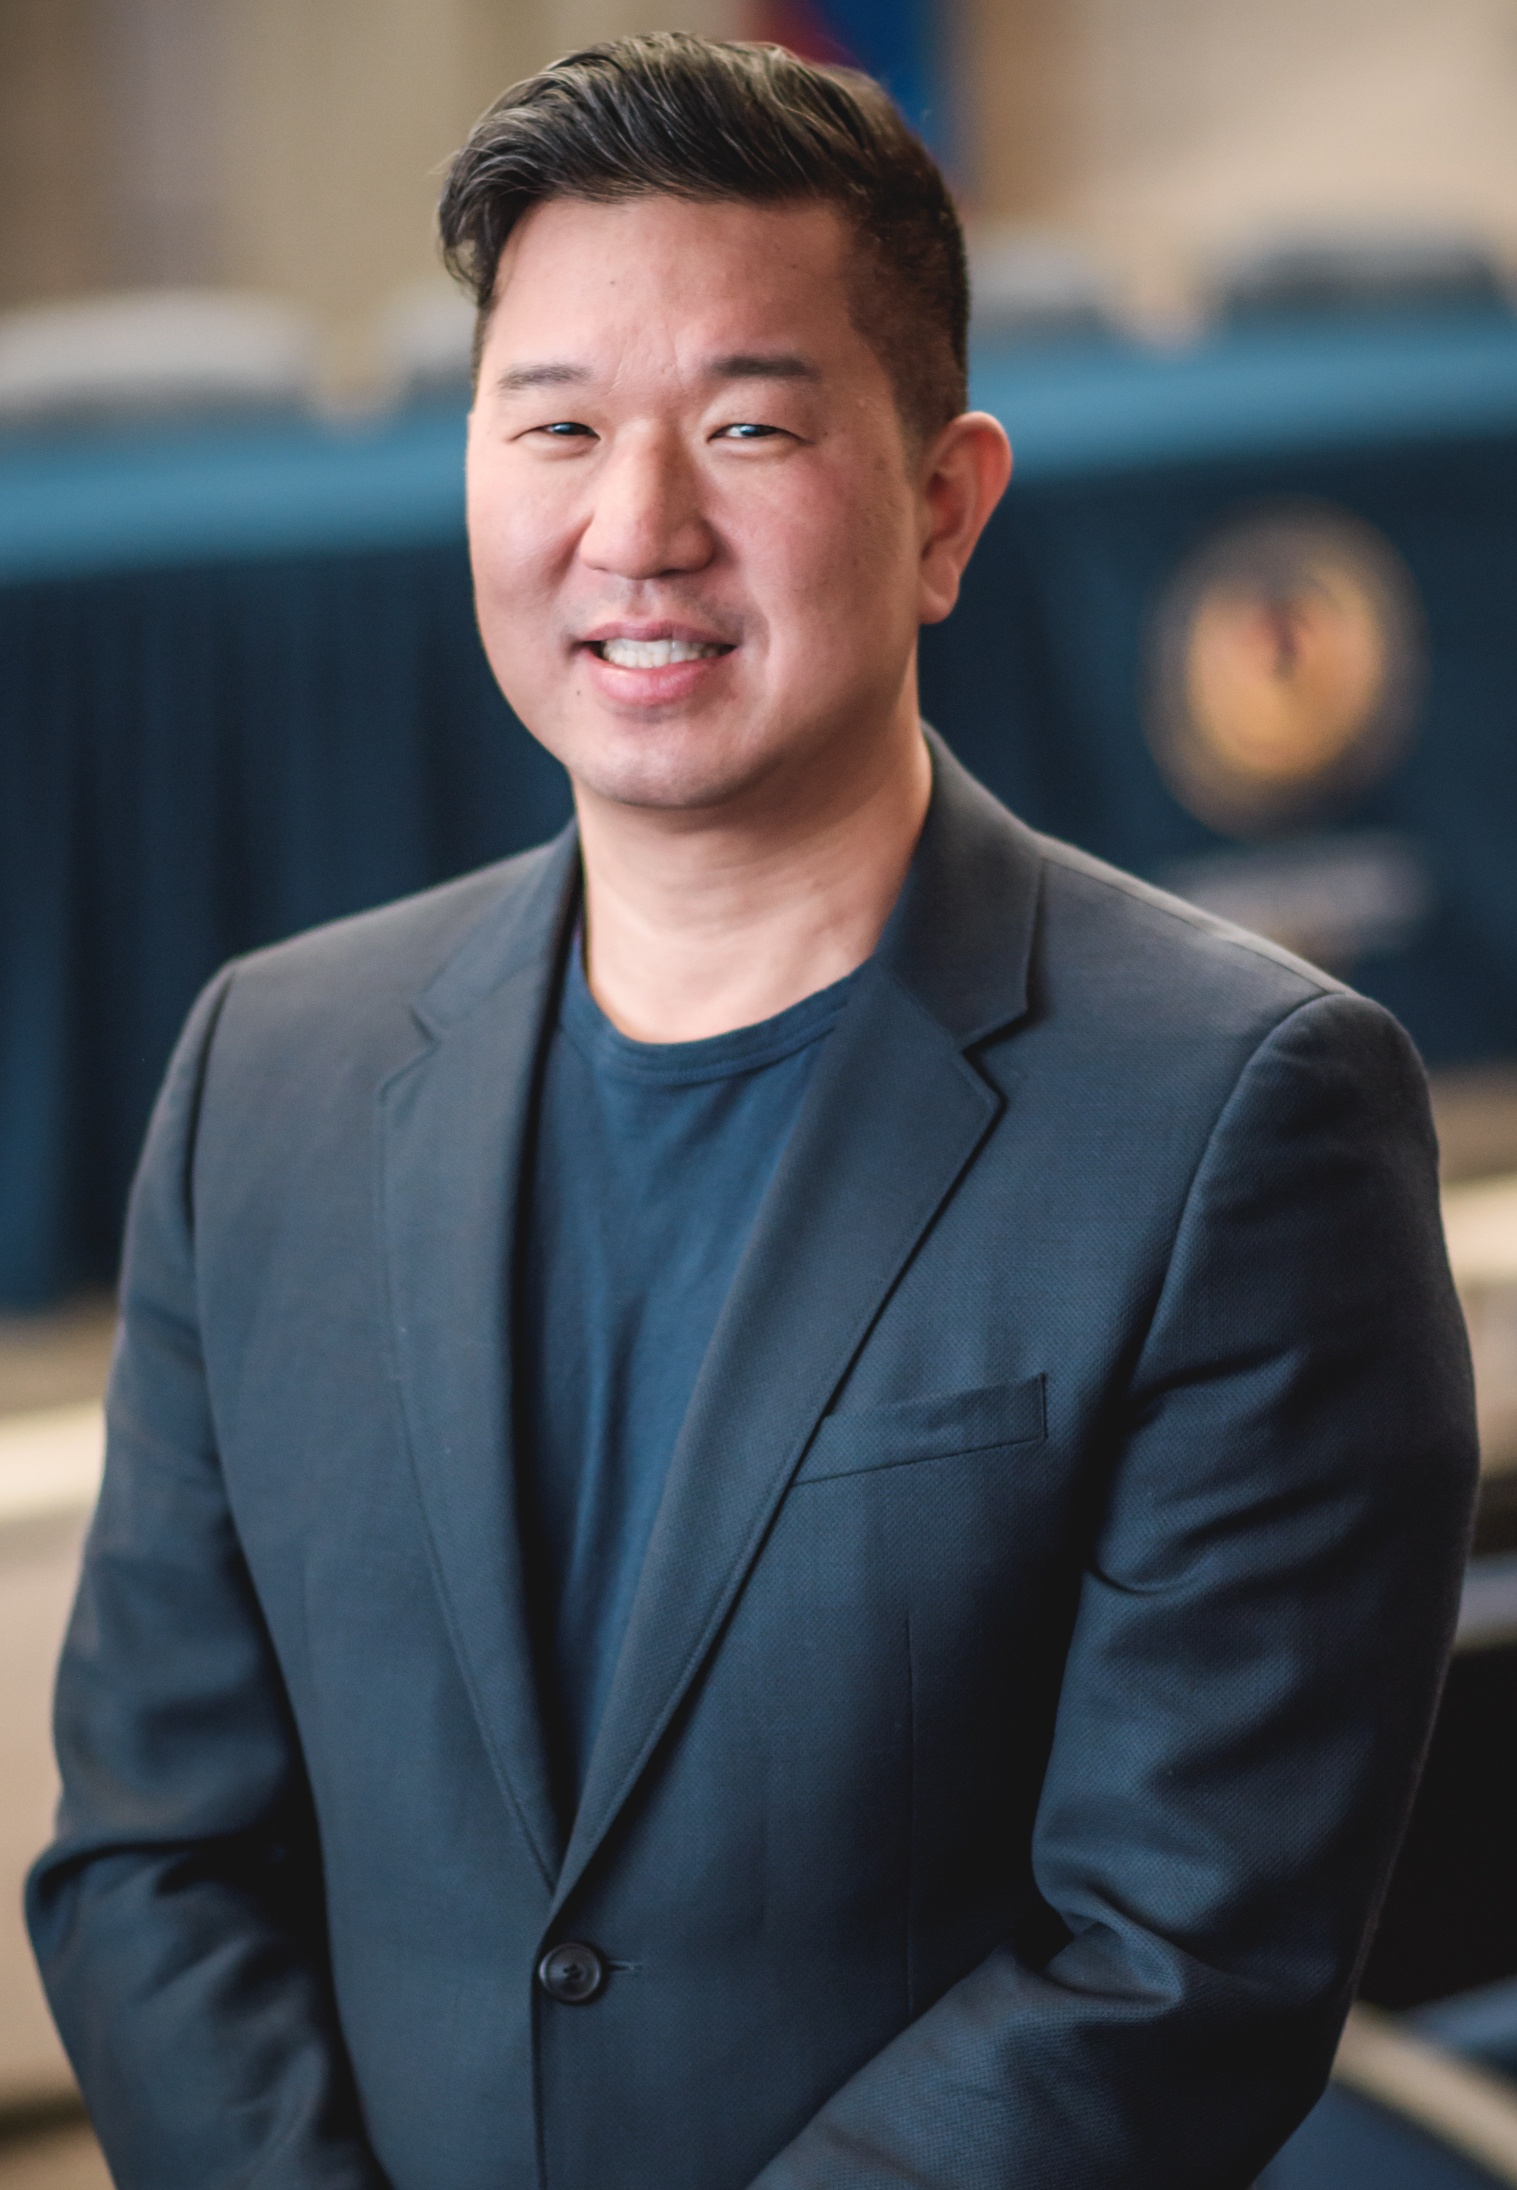 Dr. Christopher Chia